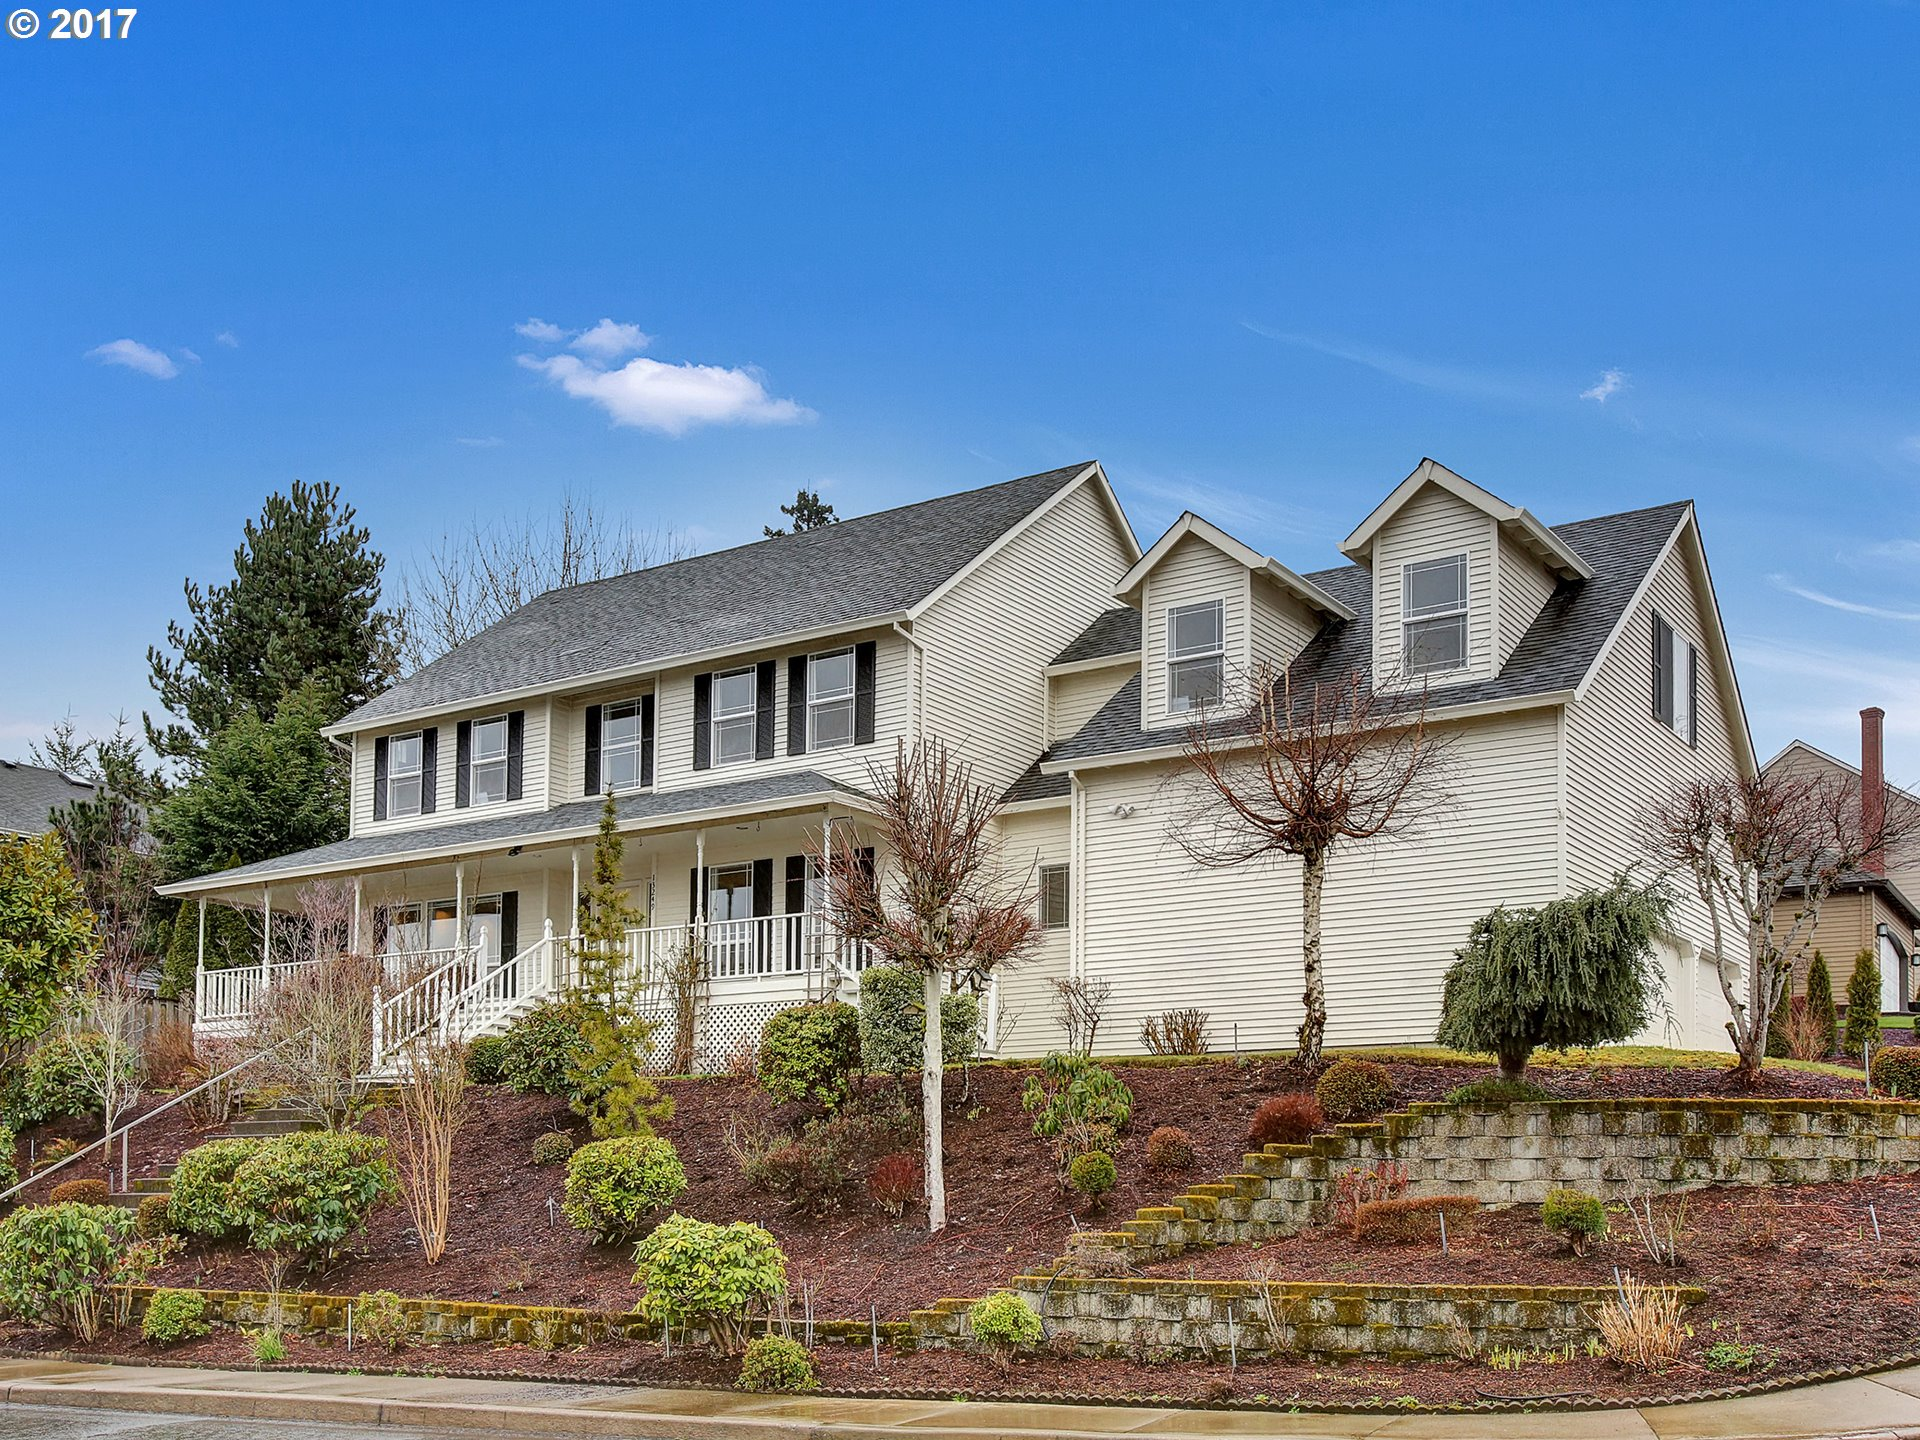 13249 SW 136TH PL Tigard, OR 97223 - MLS #: 17495915